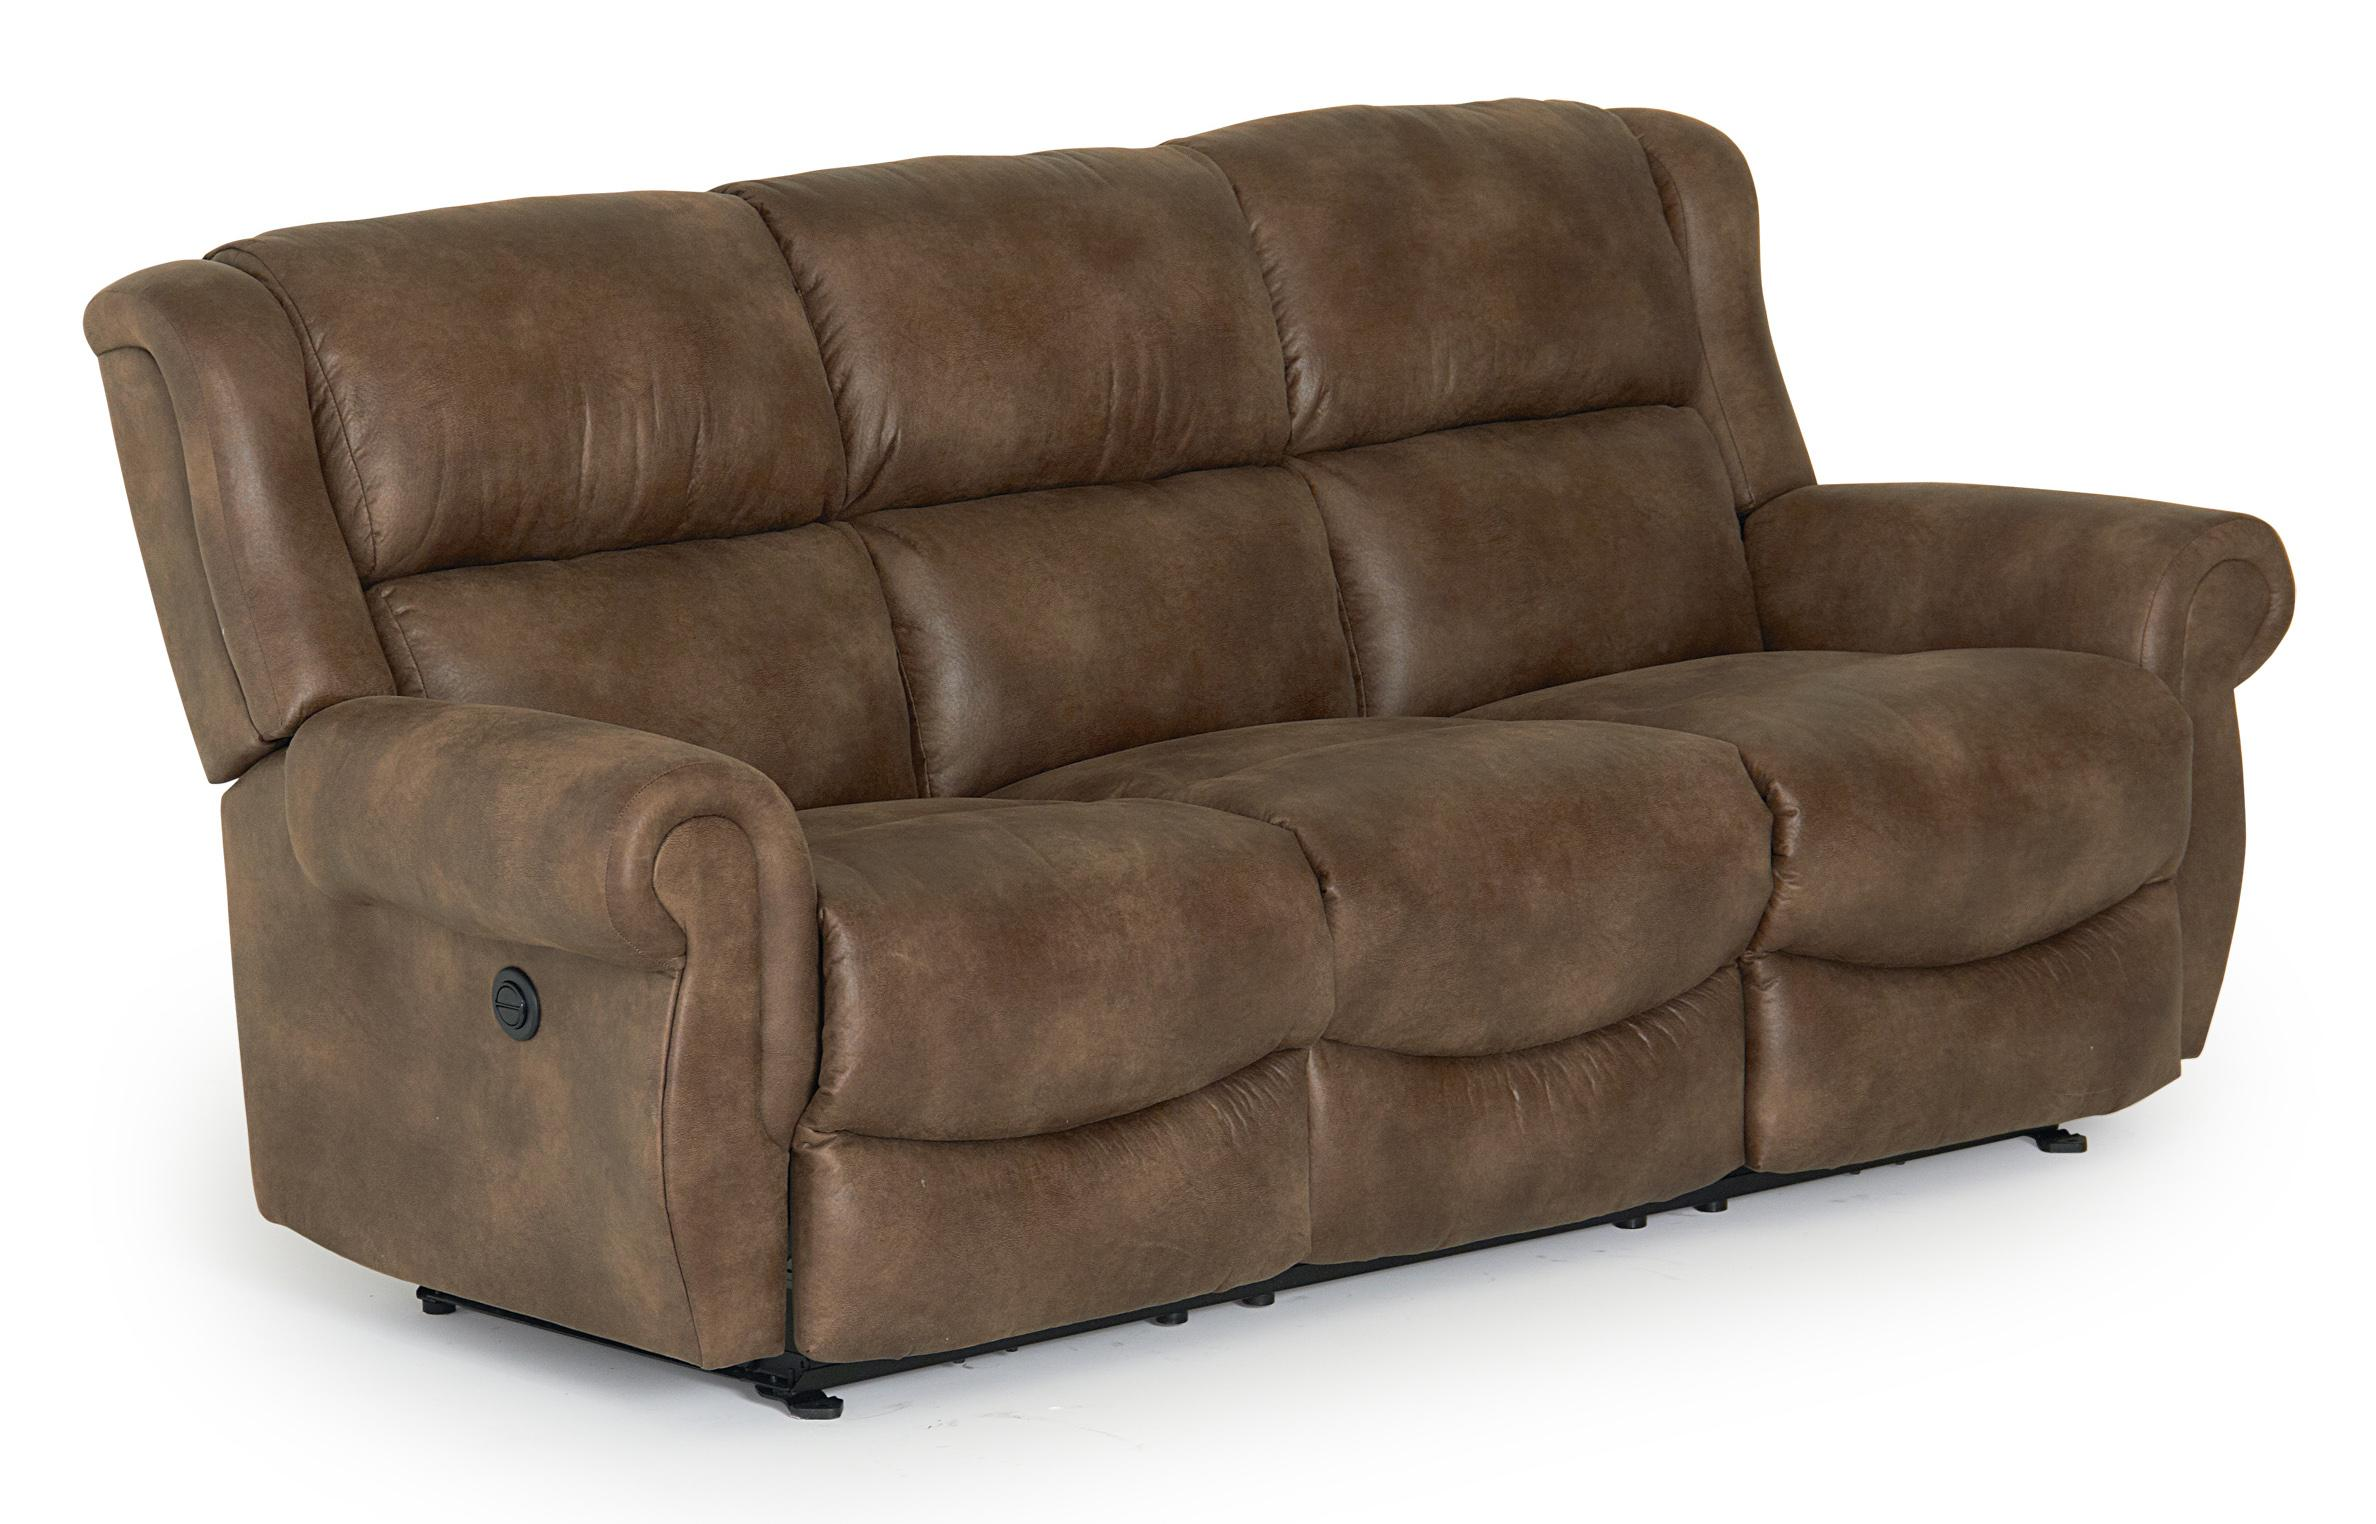 Best home furnishings terrill transitional power space - Sofa reclinable ...